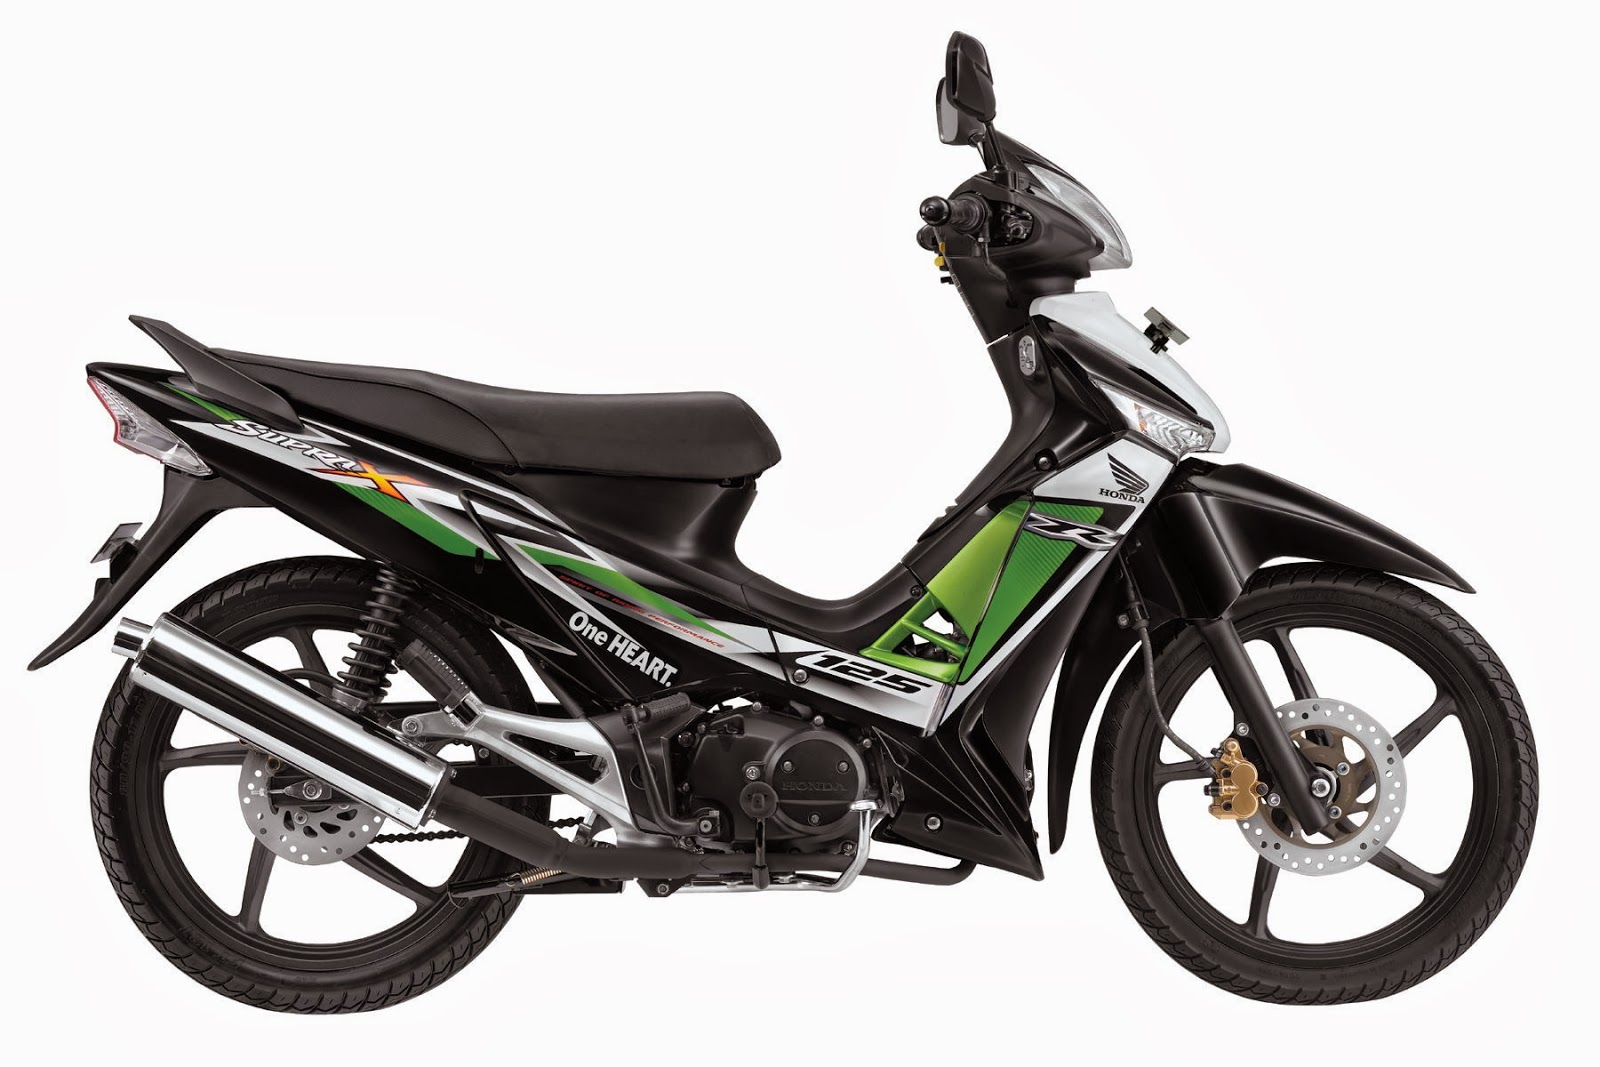 Perbandingan Supra X 125 cc Vs Smash 110 cc